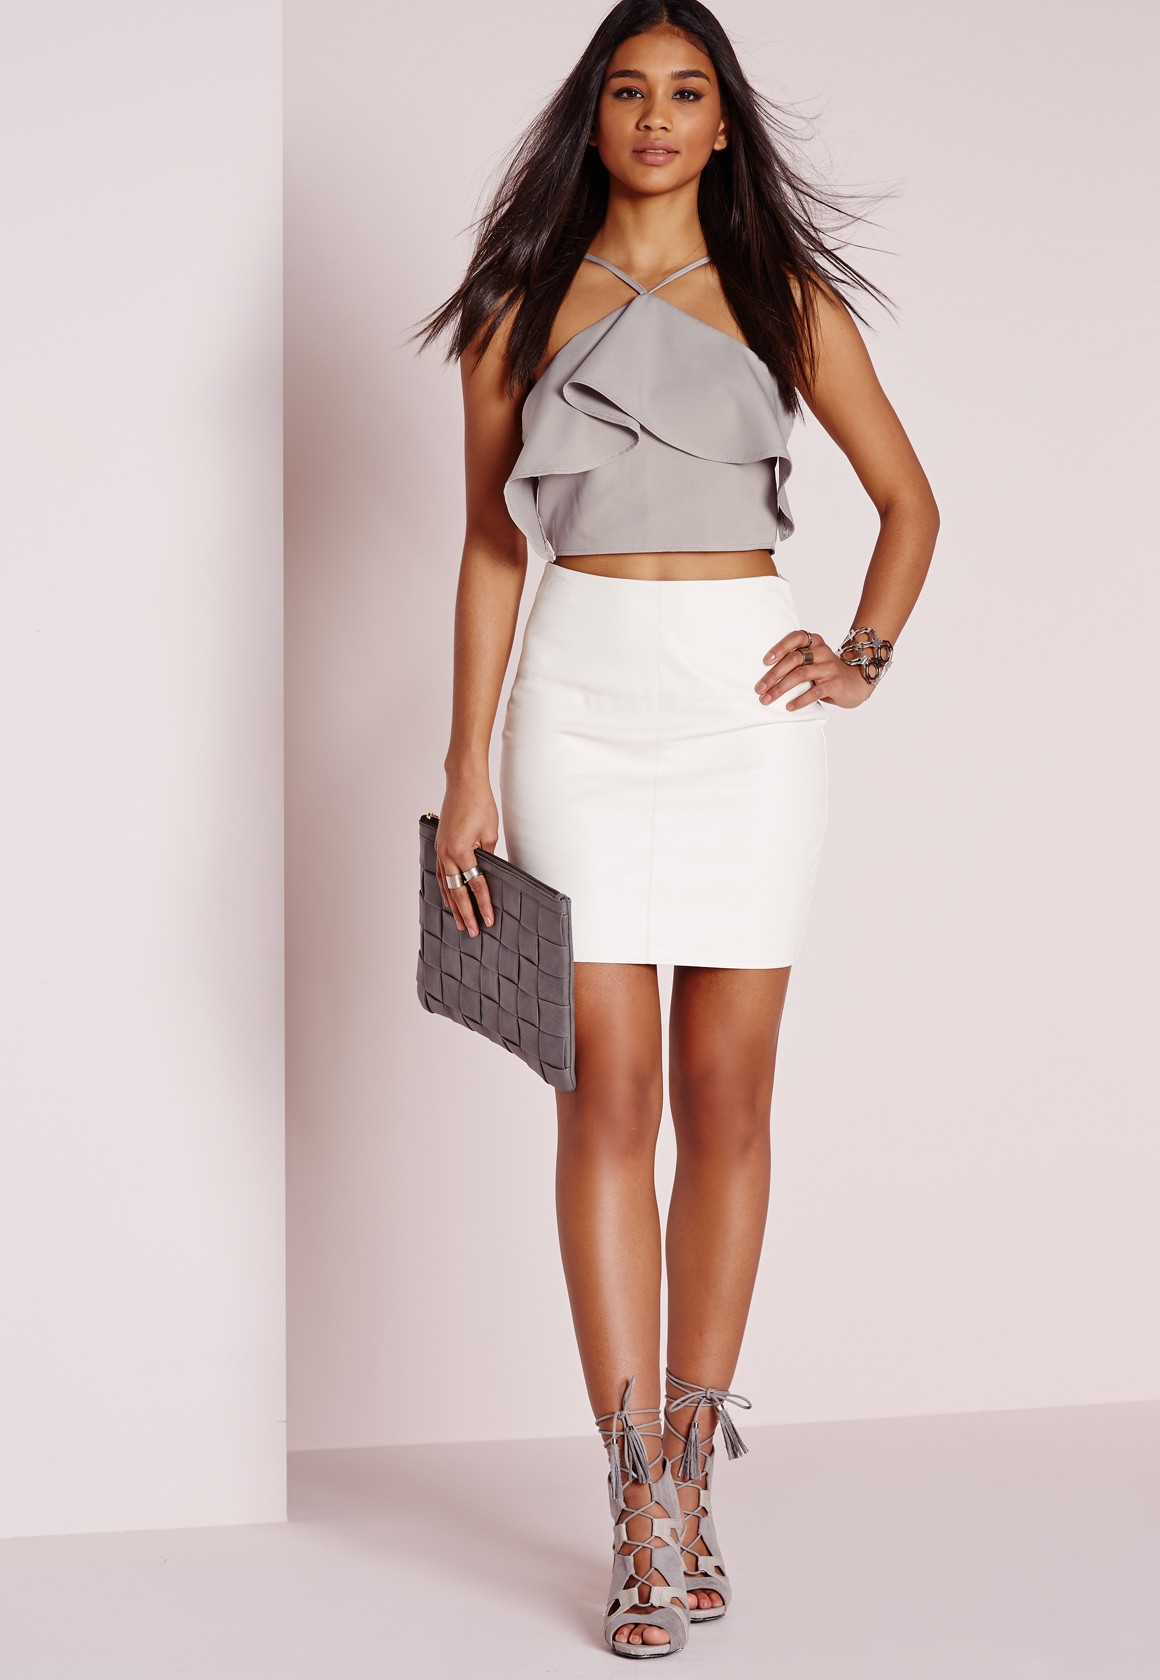 af8874b5ae7 ... 2b048697cf753 Lyst - Missguided Frill Halter Crop Top Light Grey in  Gray ...